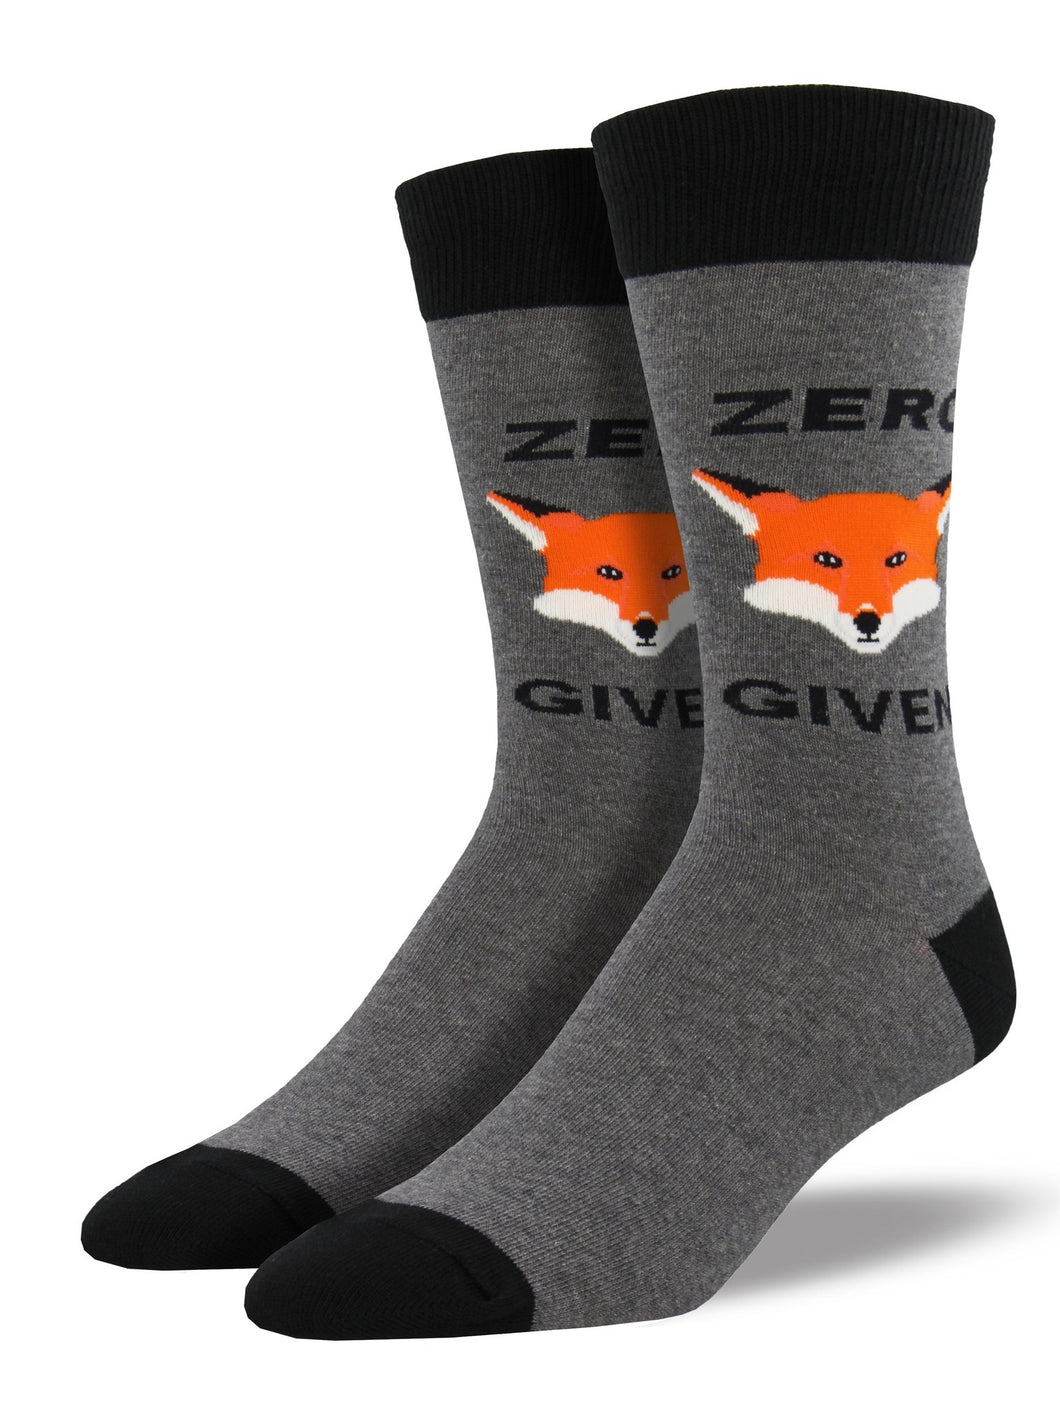 Socksmith - Men's Zero Fox Given